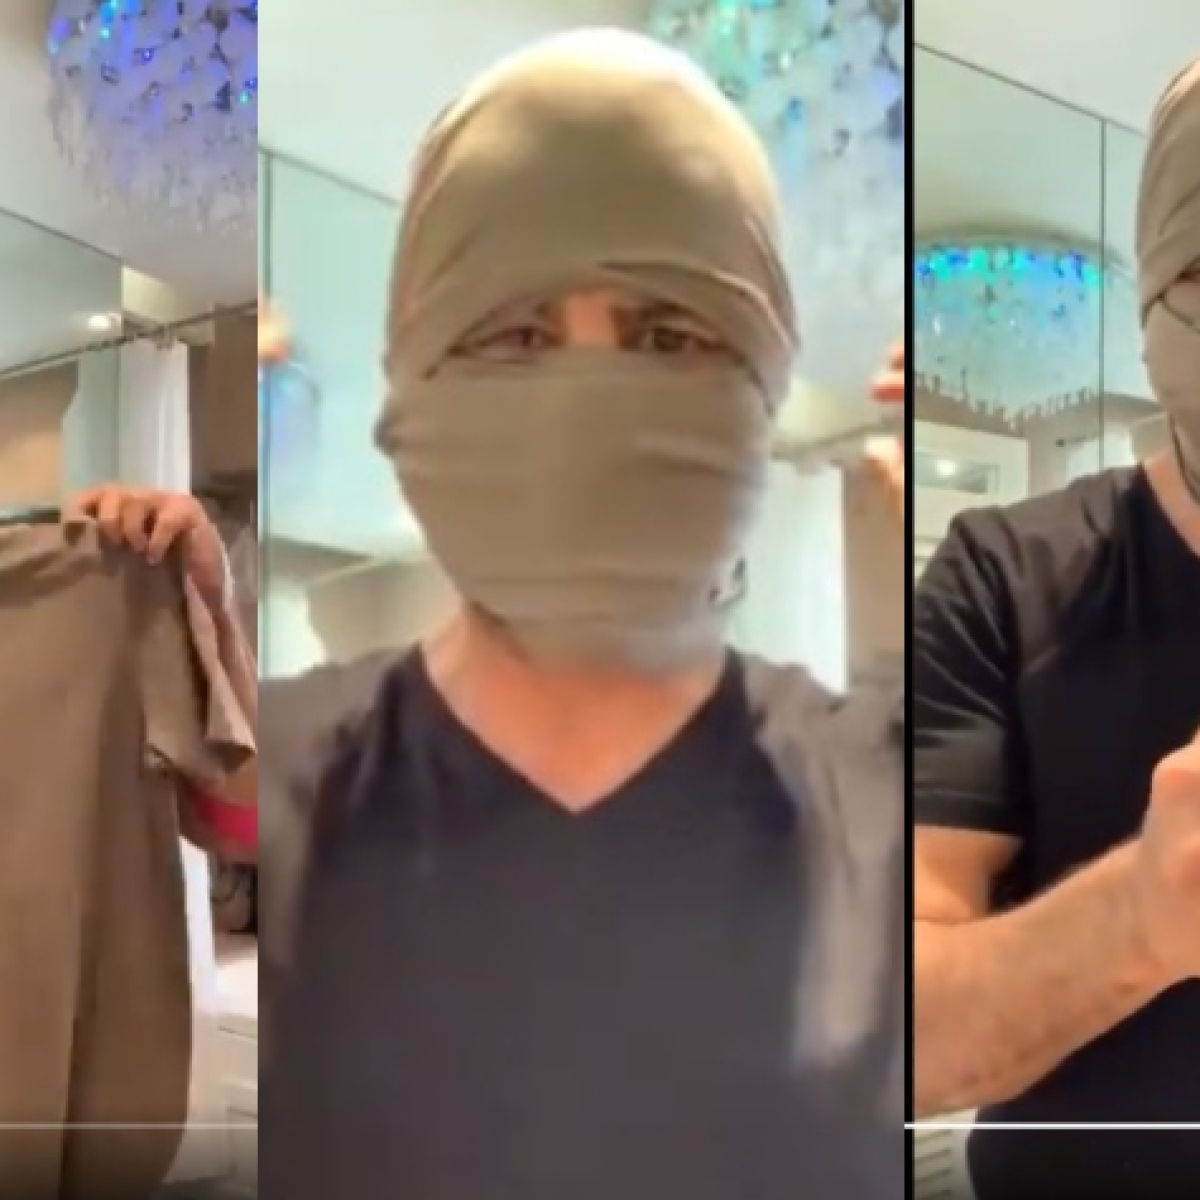 US protesters use Ronit Roy's 'No mask? Tension nahin Leneka!' video to escape facial recognition